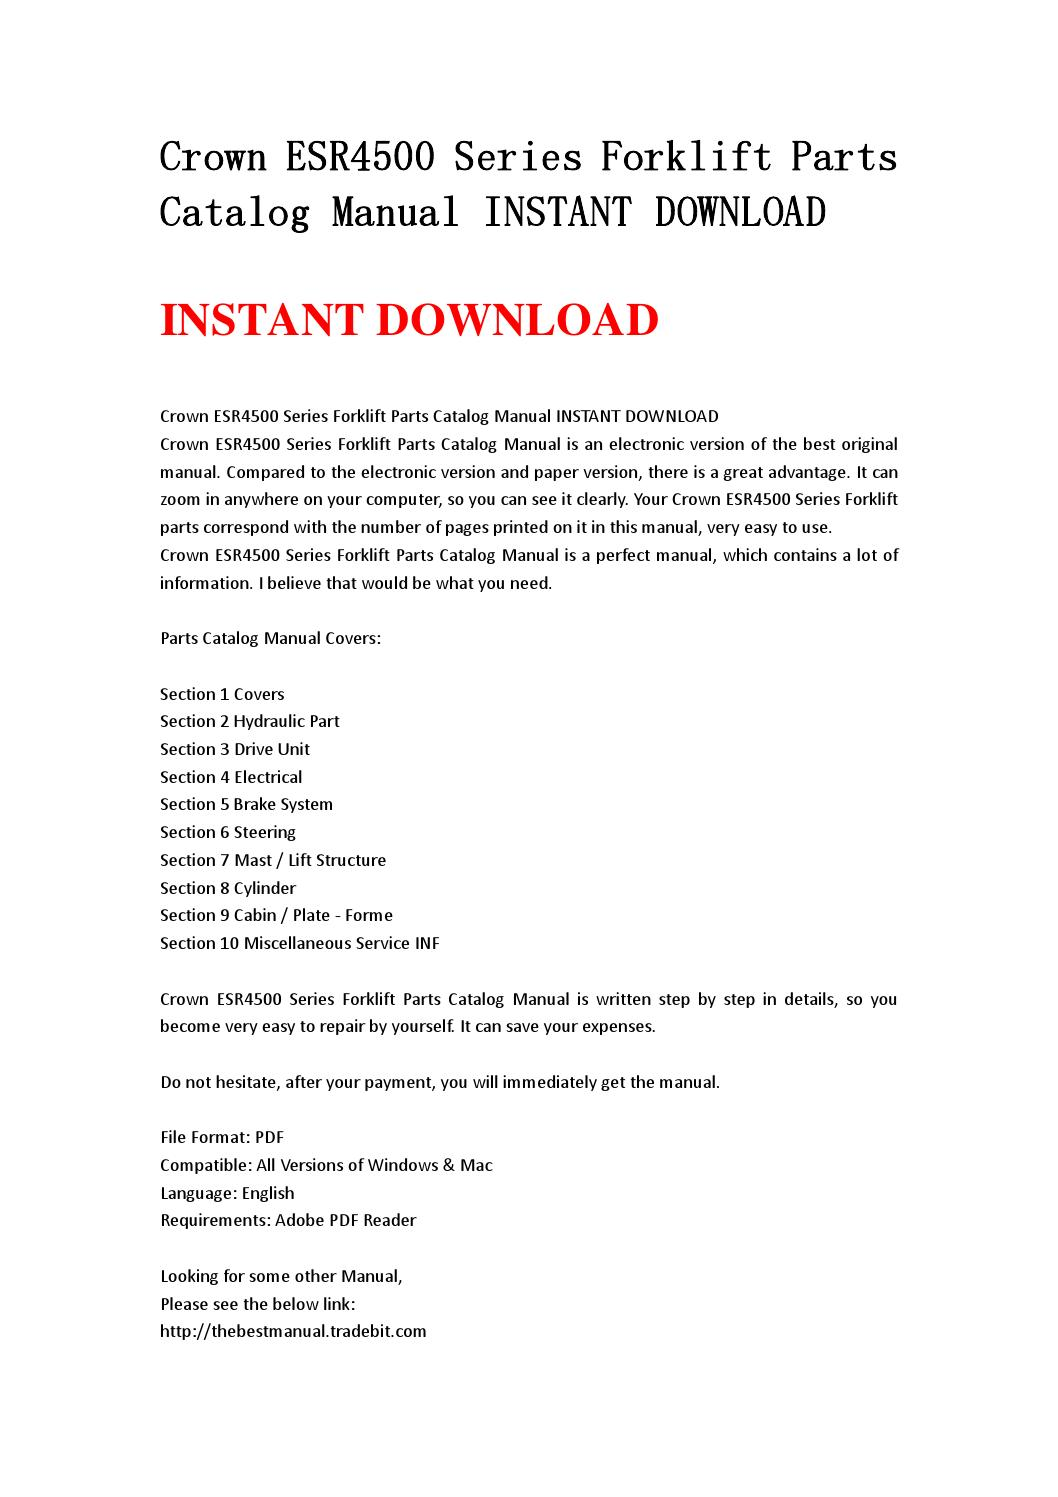 Crown esr4500 series forklift parts catalog manual instant download by  nhsjefnhe7d - issuu